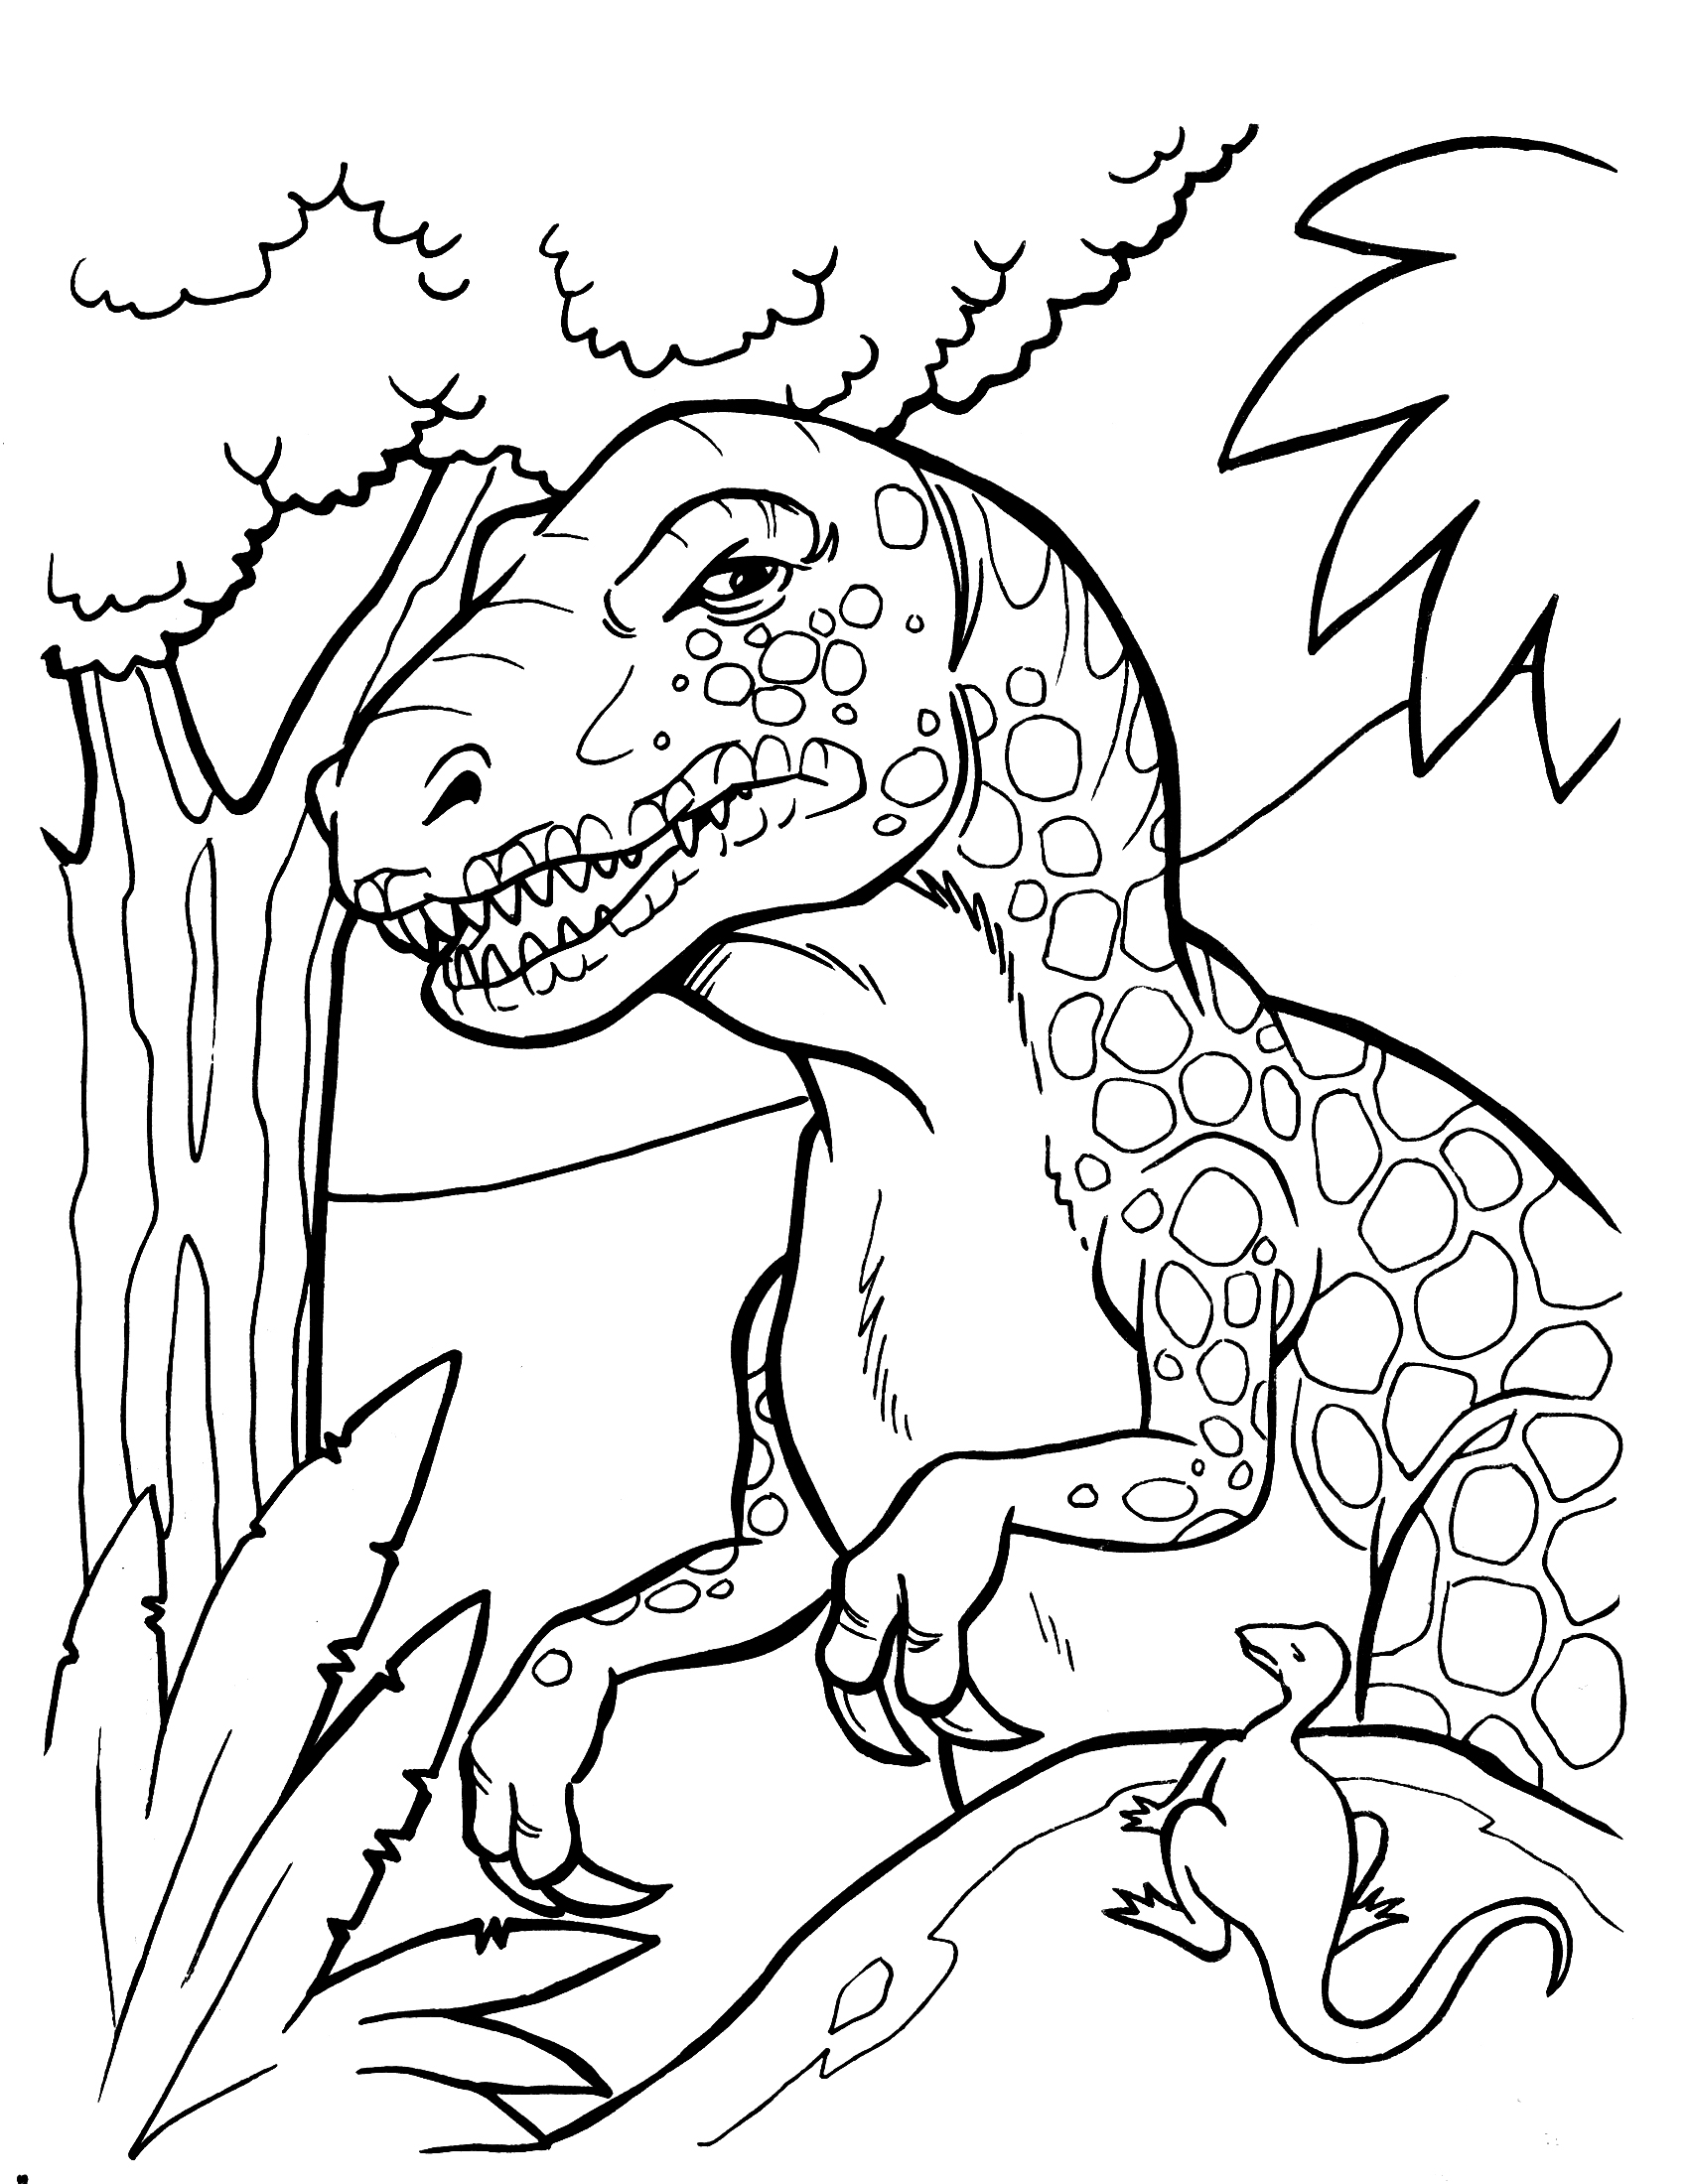 Reward Scary Dinosaur Coloring Pages Free Printable Clip And Color P Gallery Of Herbivorous